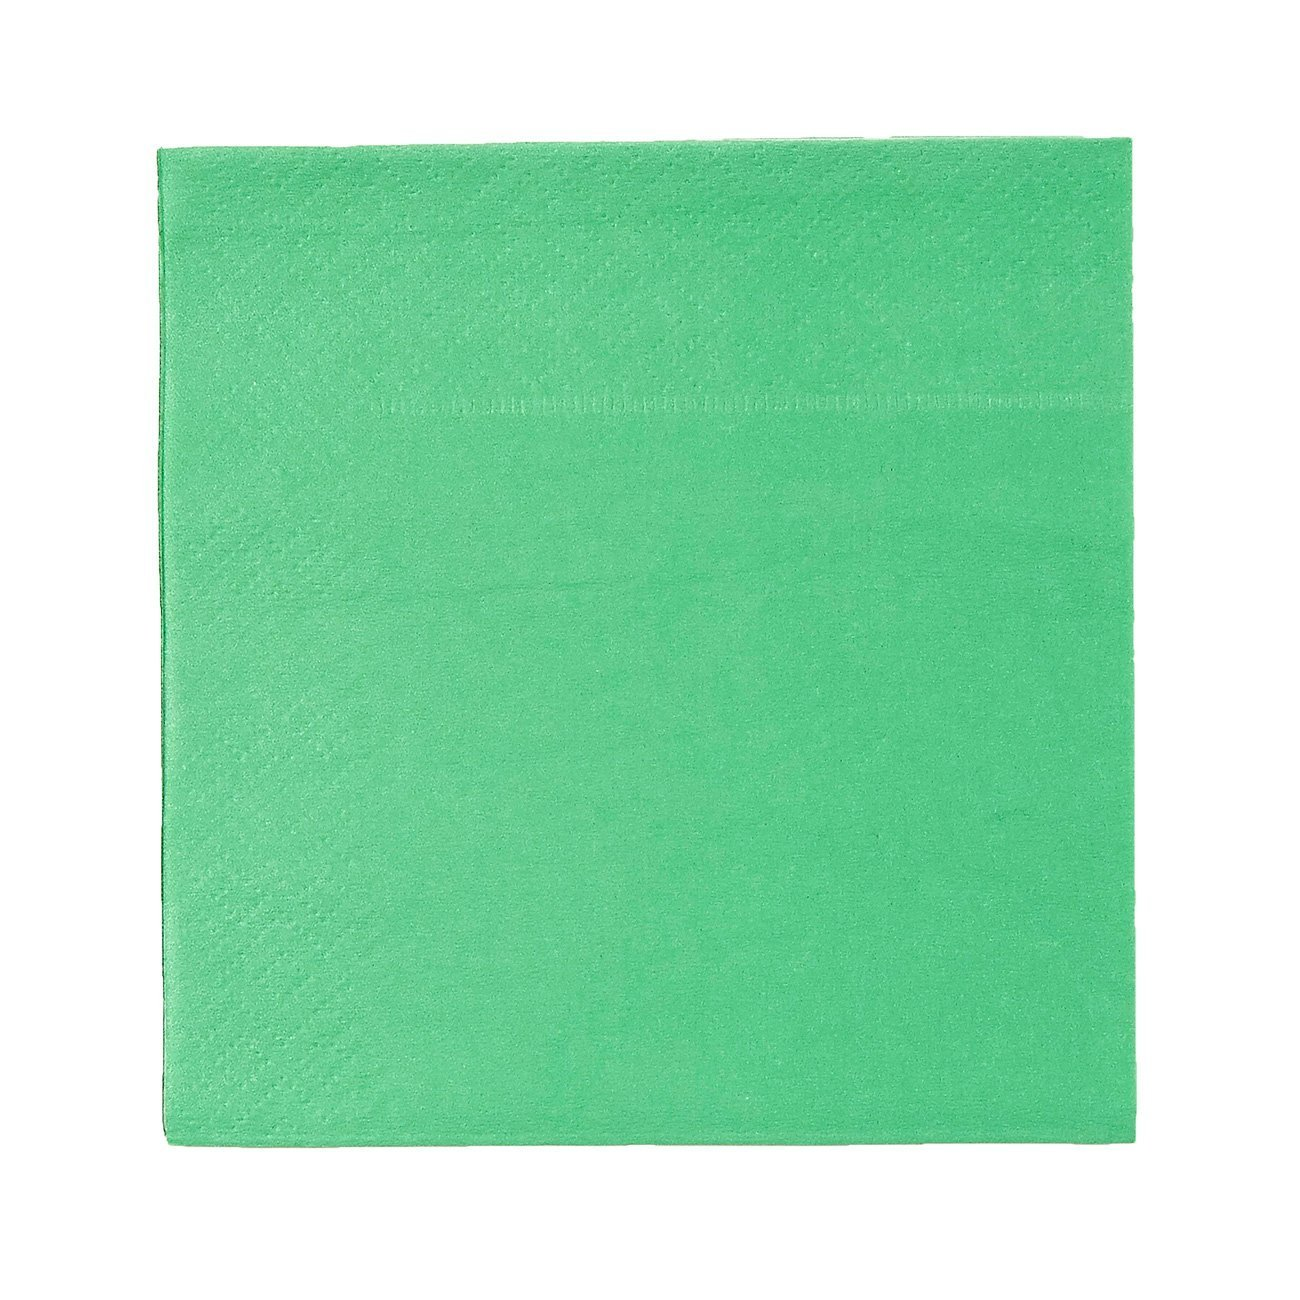 Cocktail Napkins - 200-Pack Disposable Paper Napkins, 2-Ply, Kelly Green, 5 x 5 Inches Folded